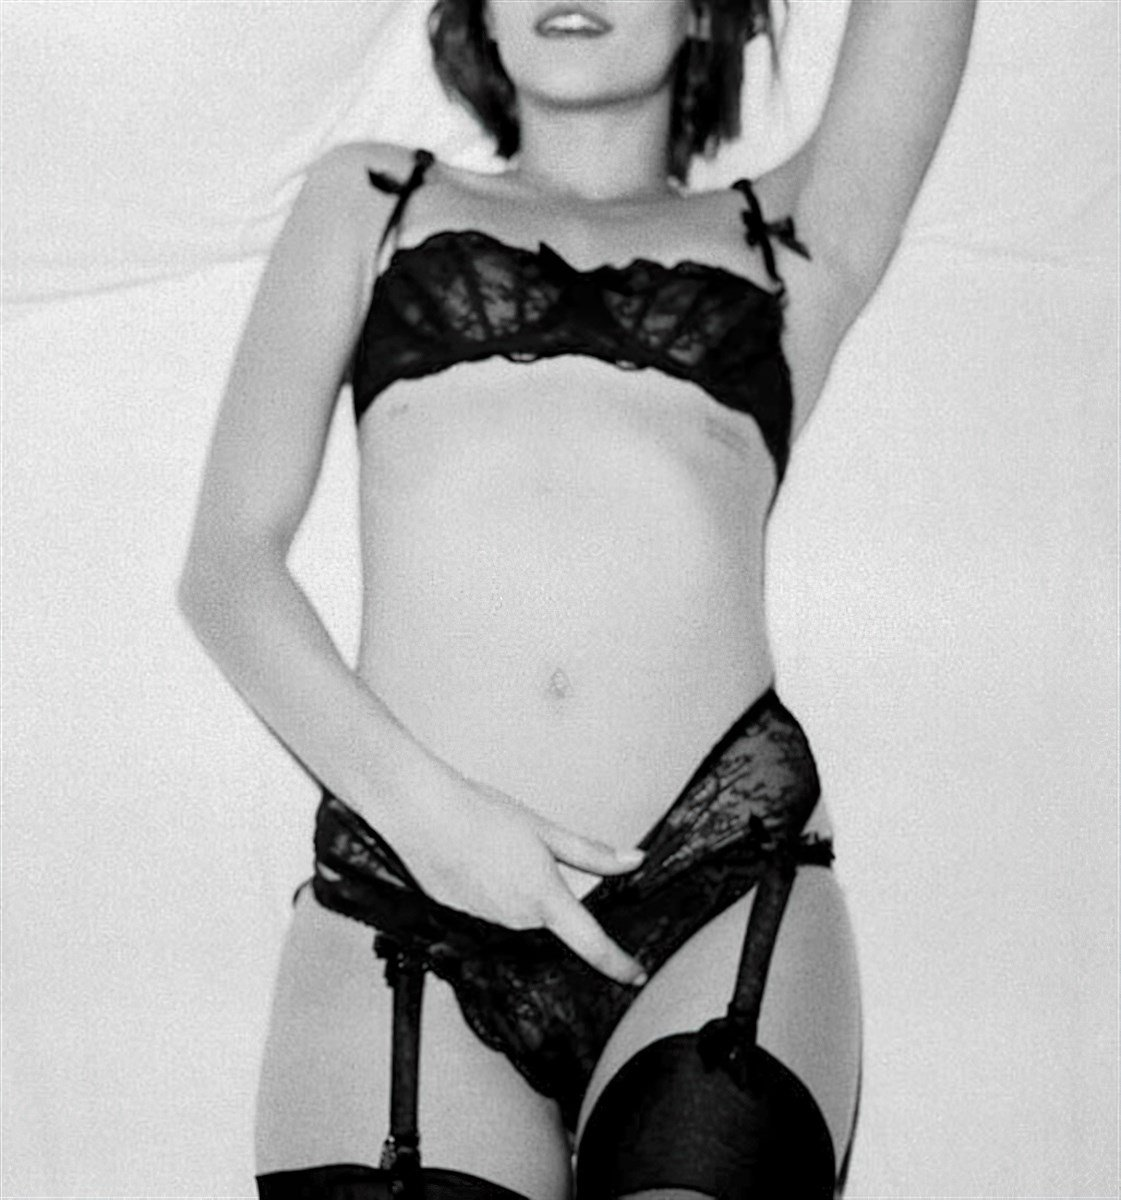 Willa Holland Nude Outtake Photos Released